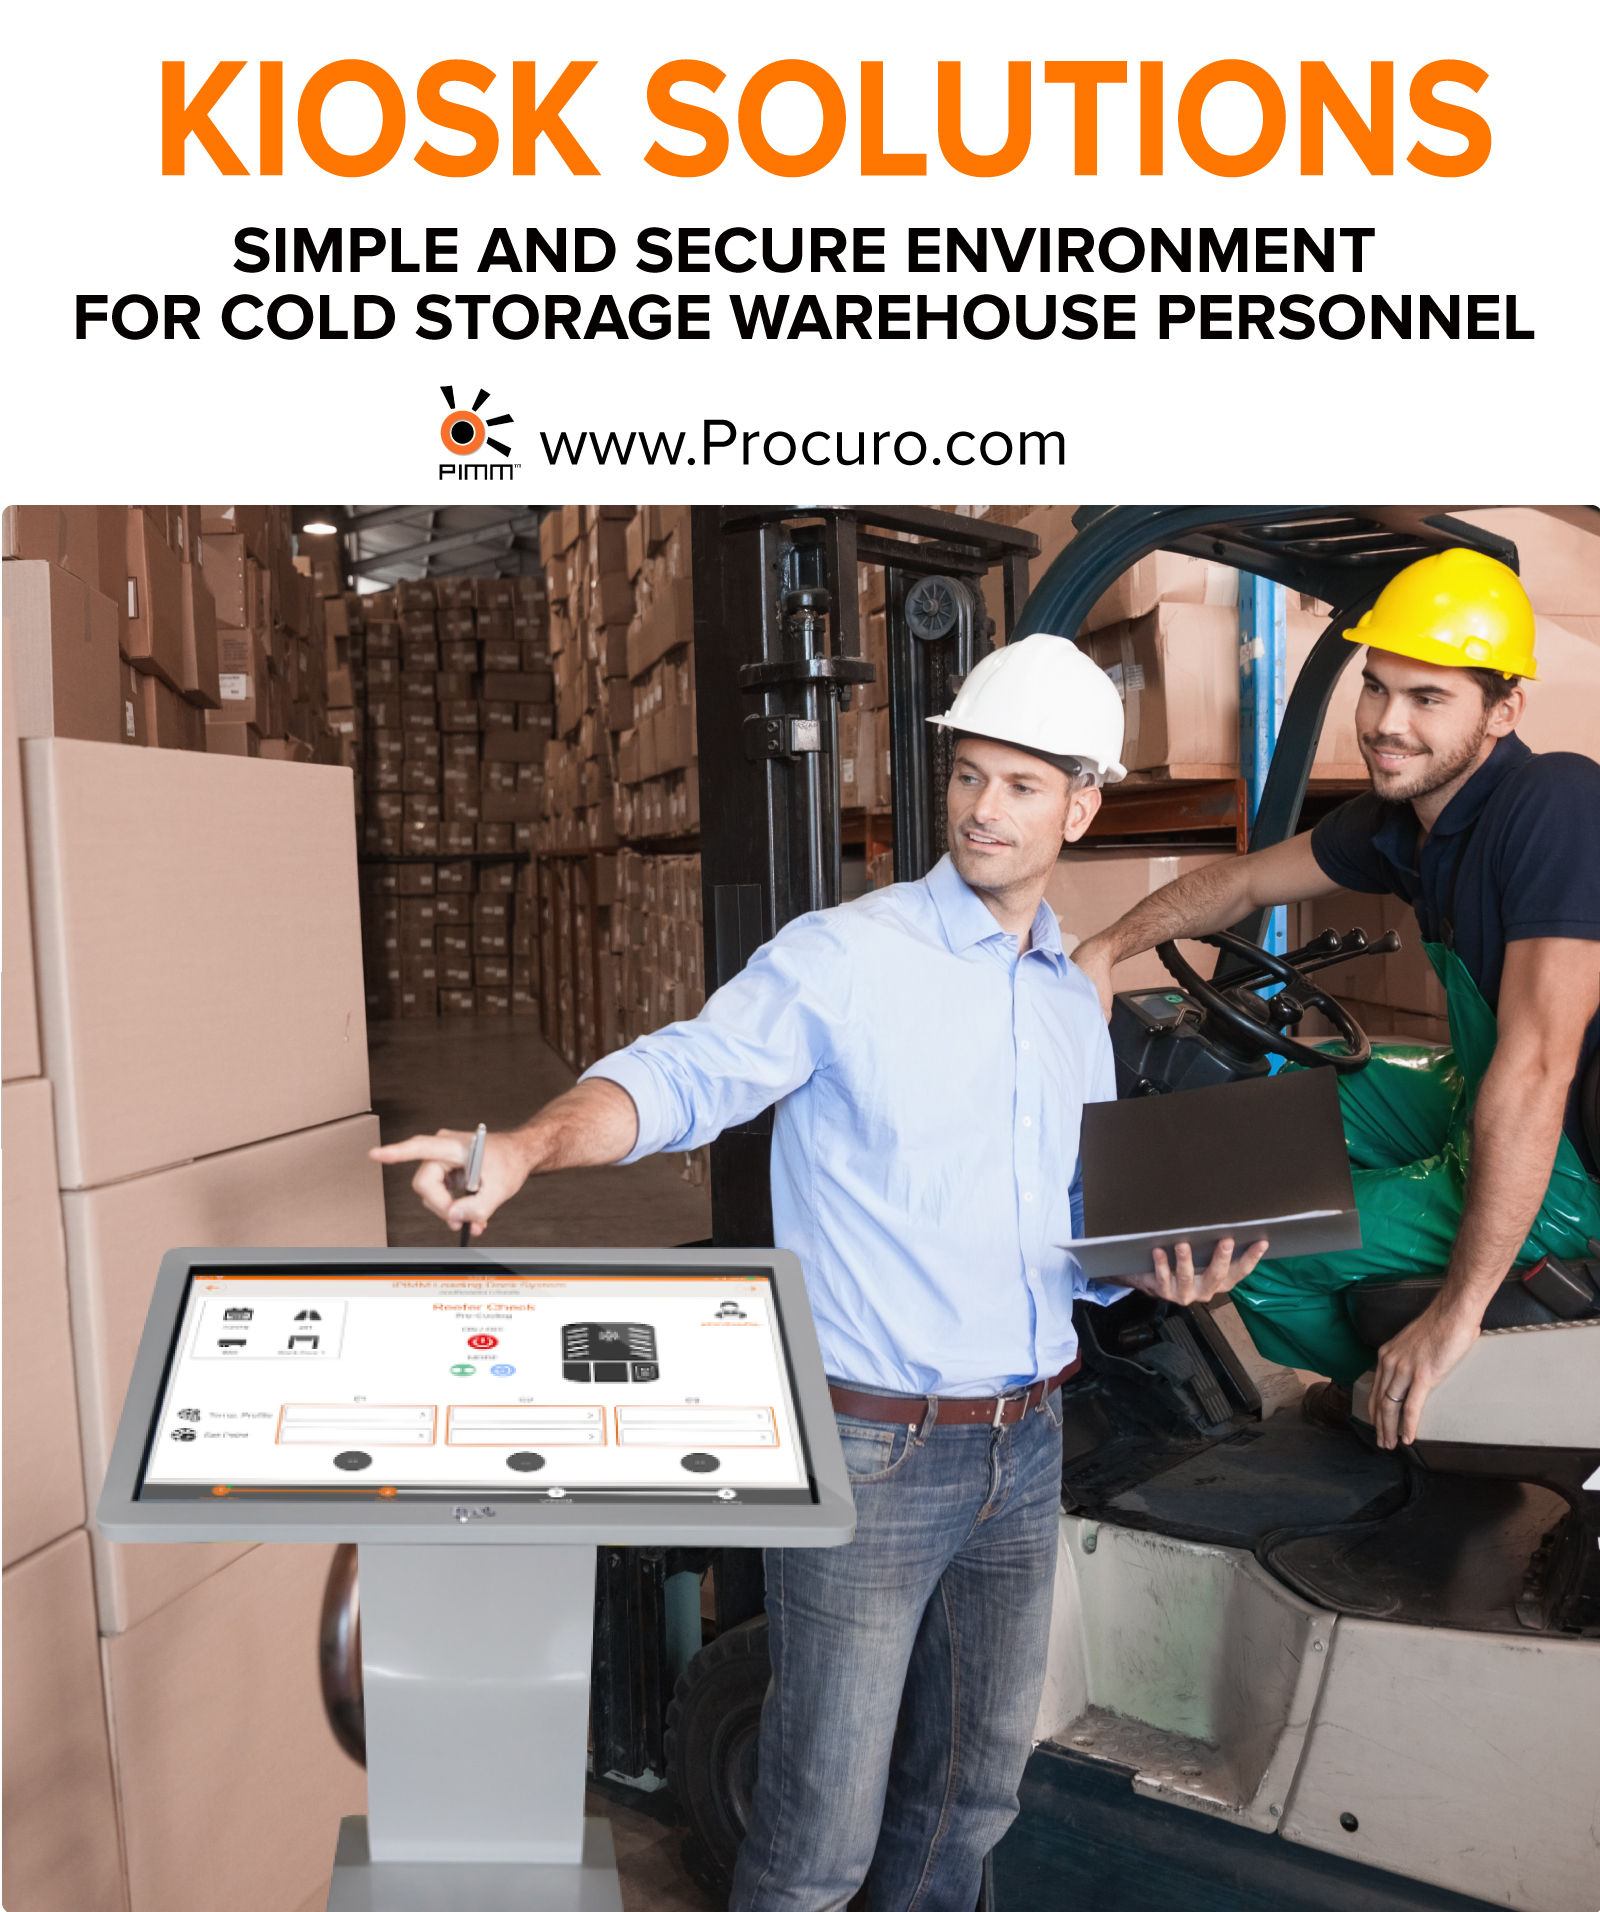 Kiosk Solutions  Simple and Secure Environment for Cold